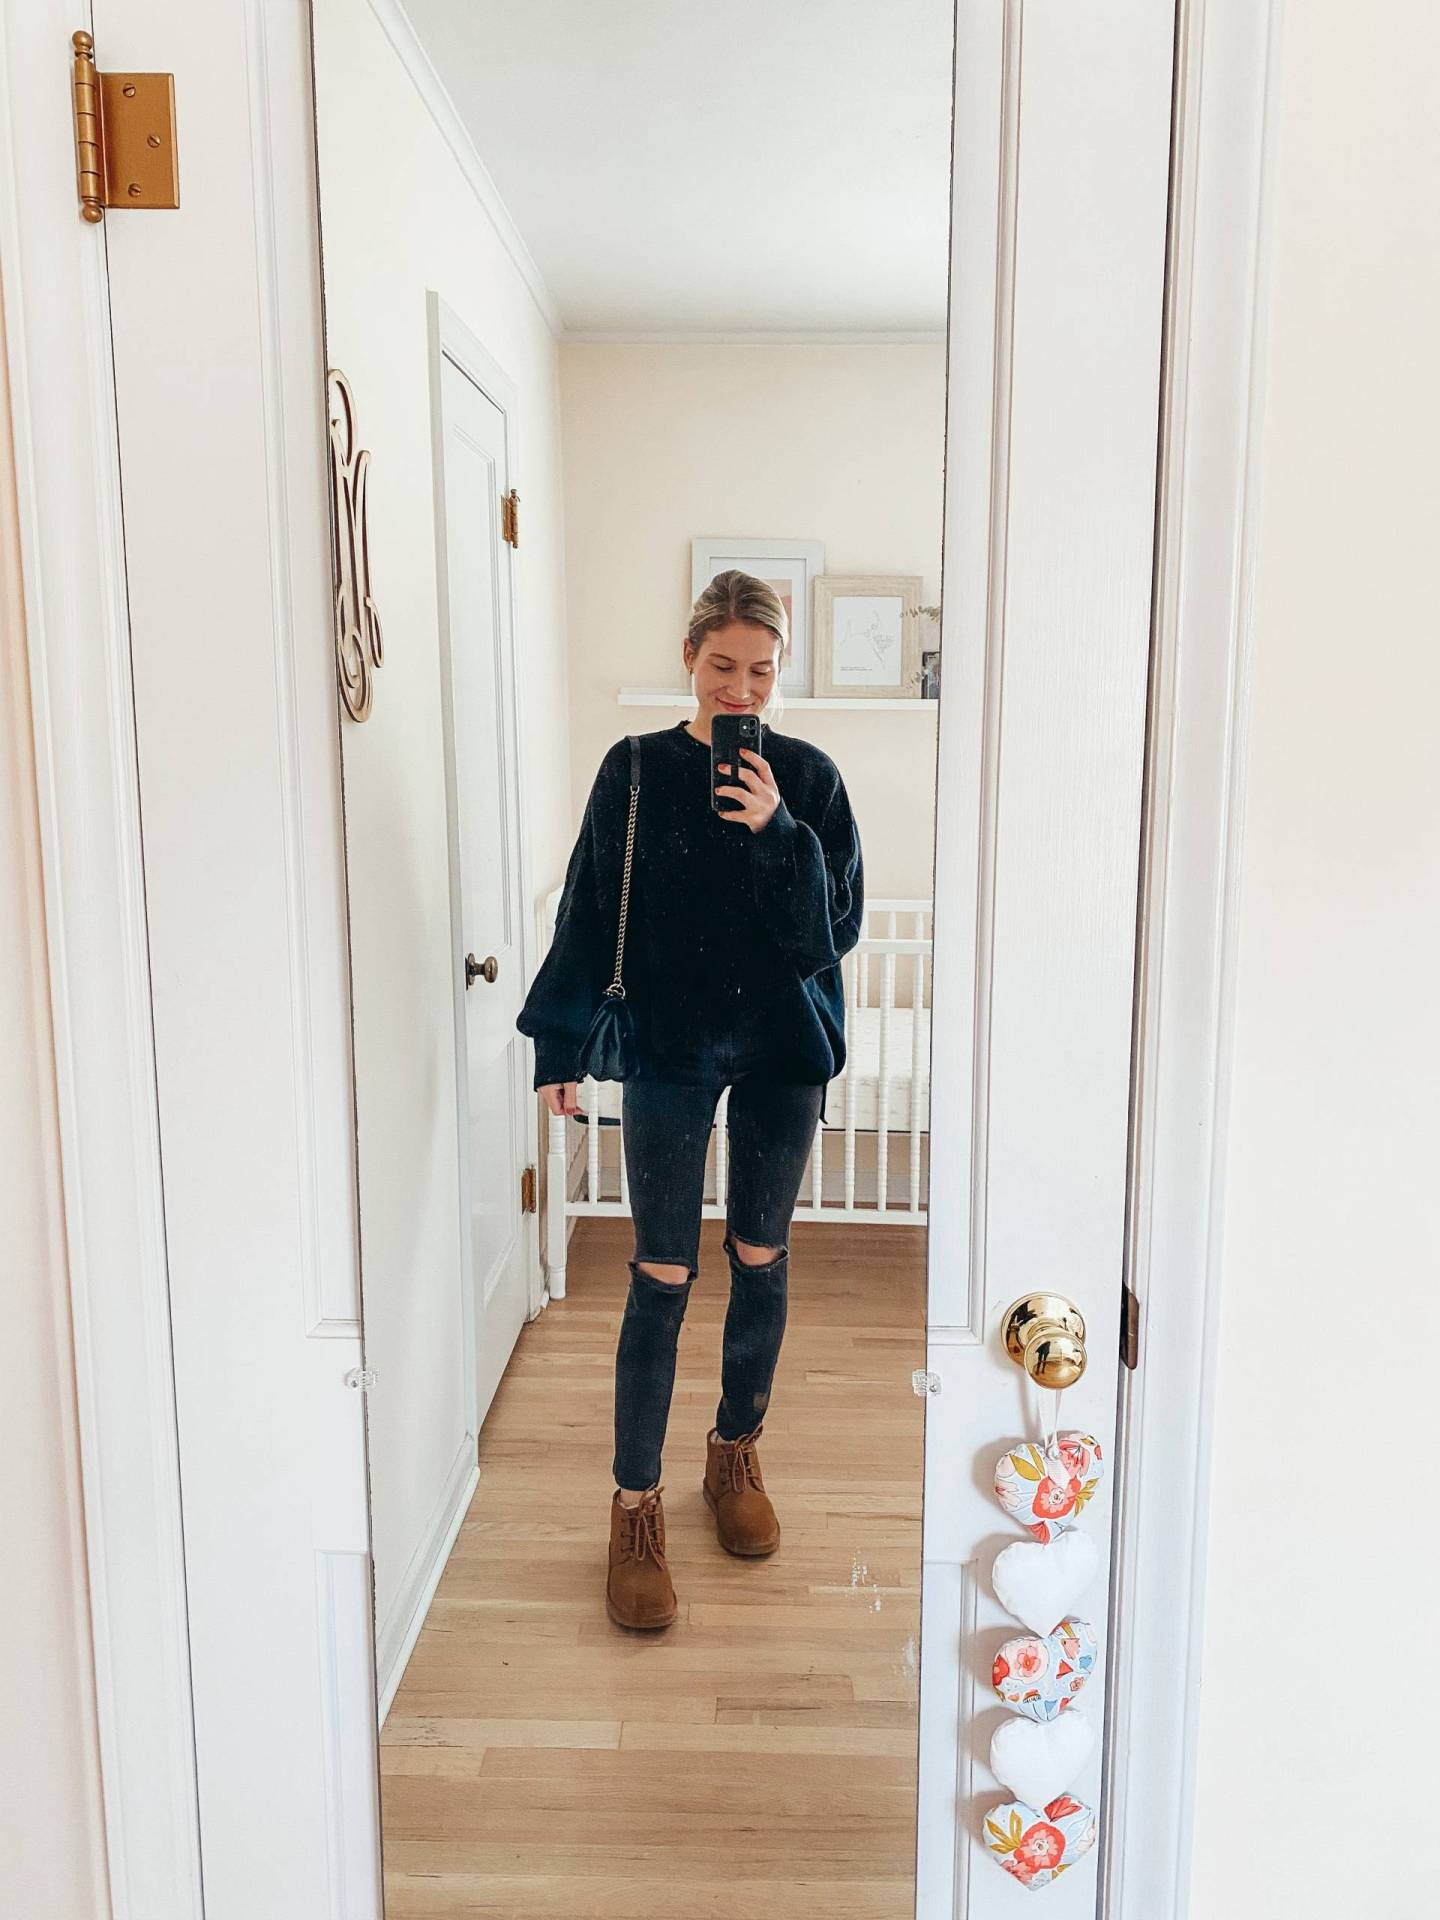 Free People Easy Street Tunic Sizing Info and Review